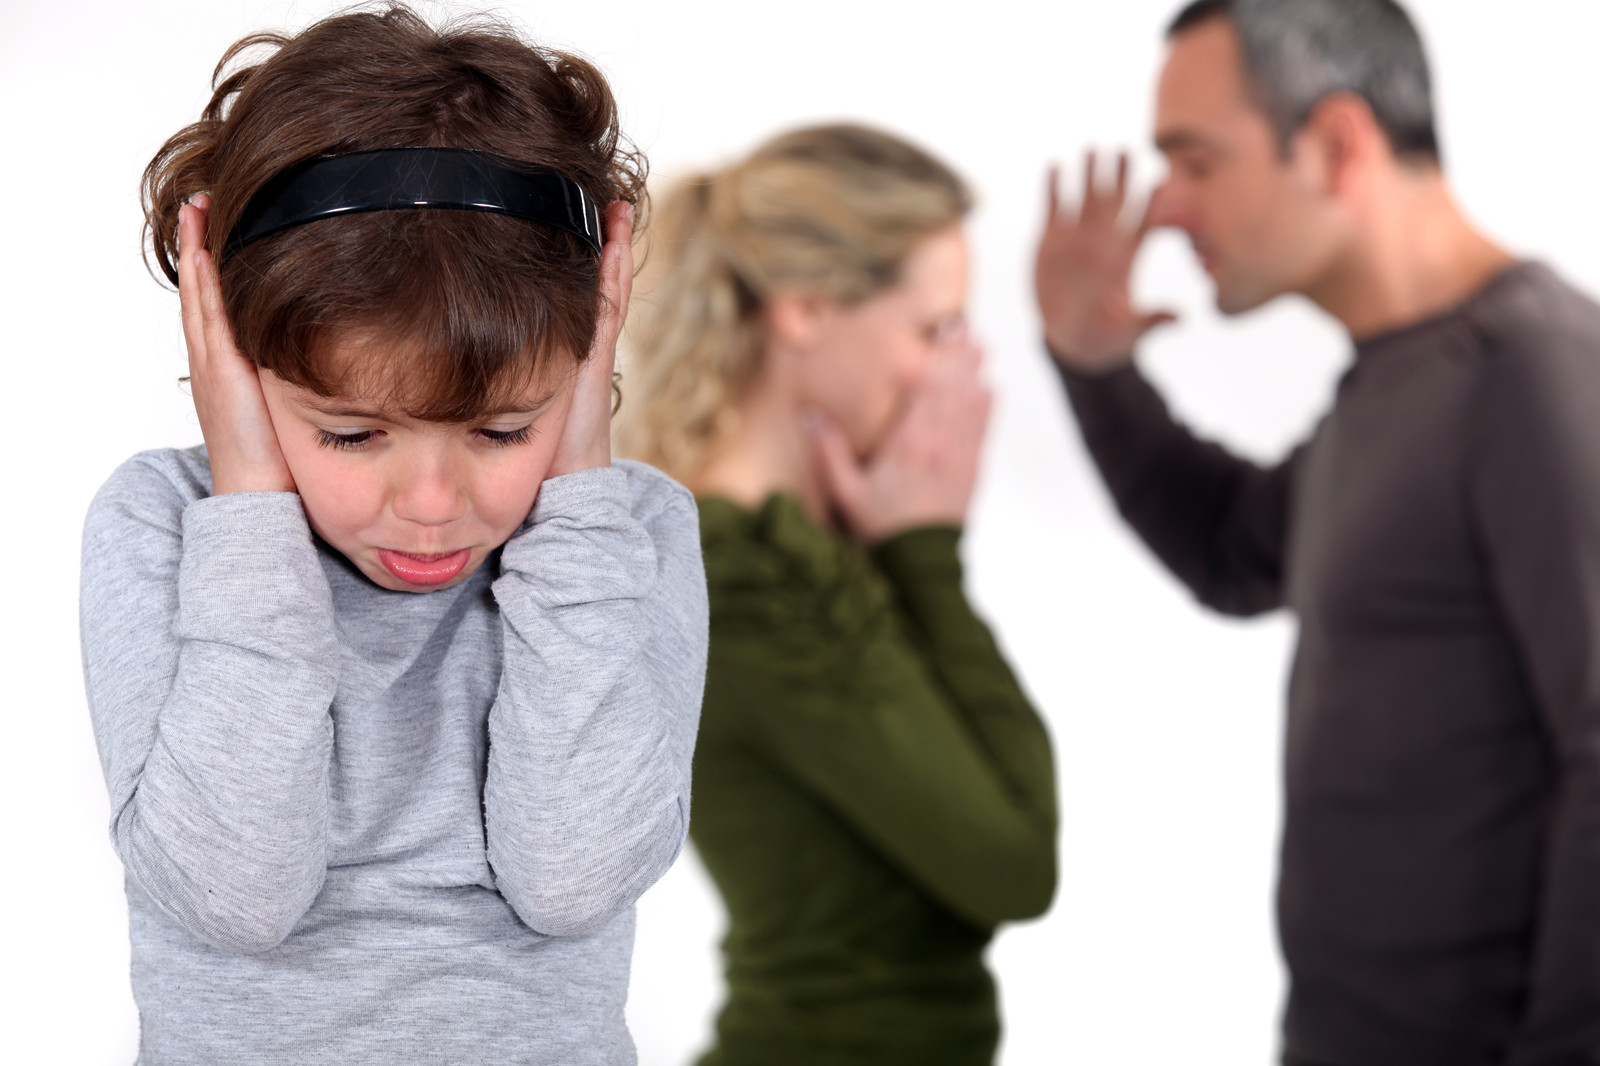 domestic violence between parents and children Intimate partner violence (ipv), also referred to as domestic violence, occurs  when an  children with ipv exposure are more likely to have also experienced .